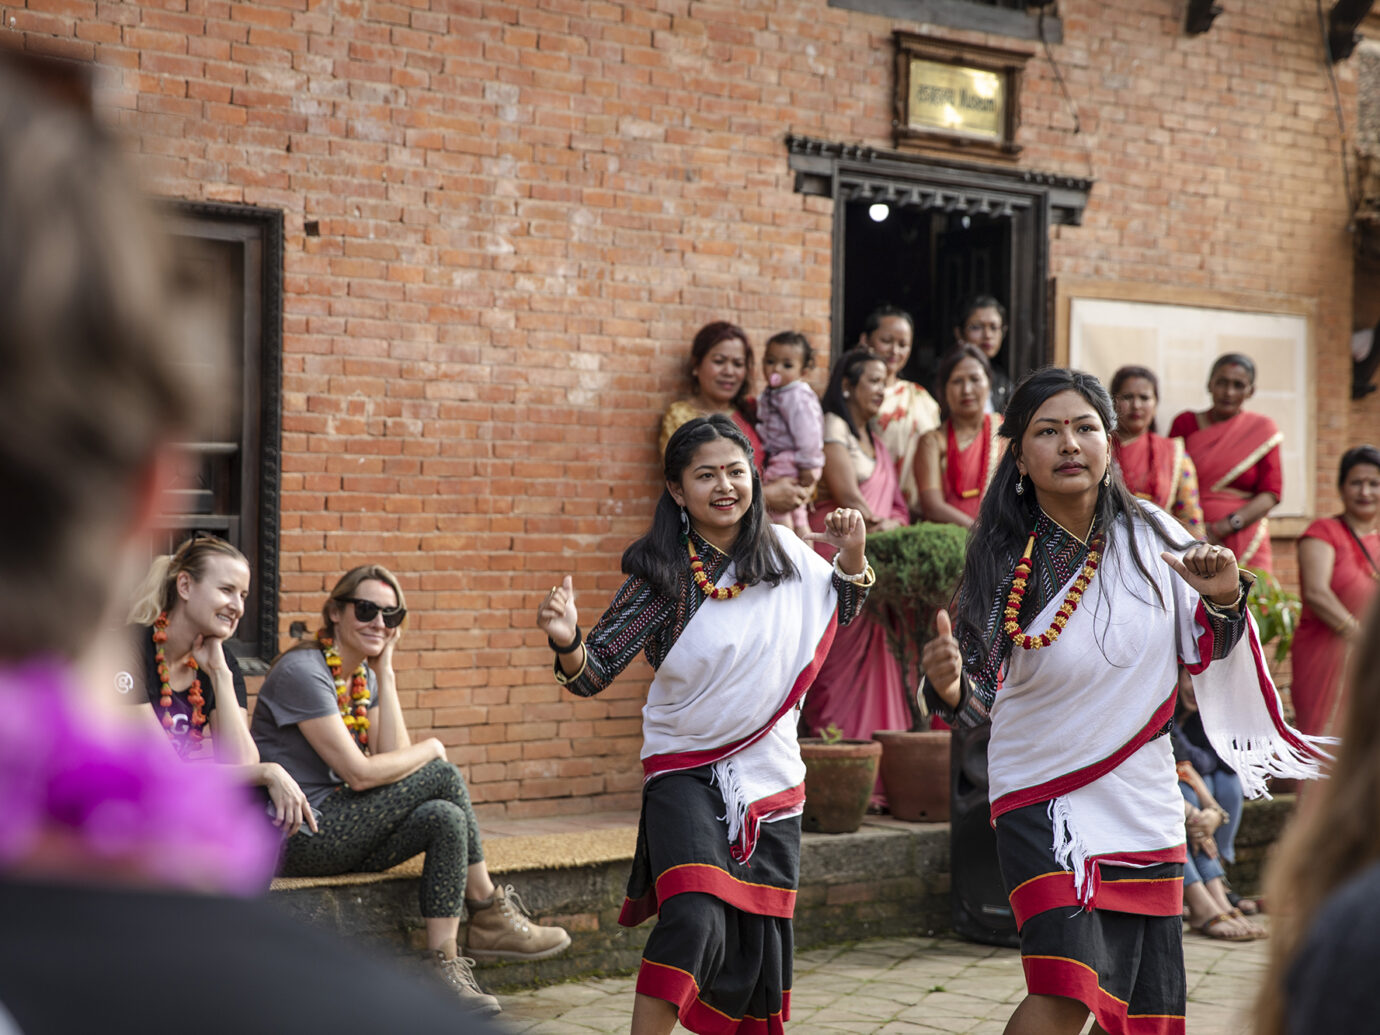 Women dancing in traditional Indian clothing in Agra